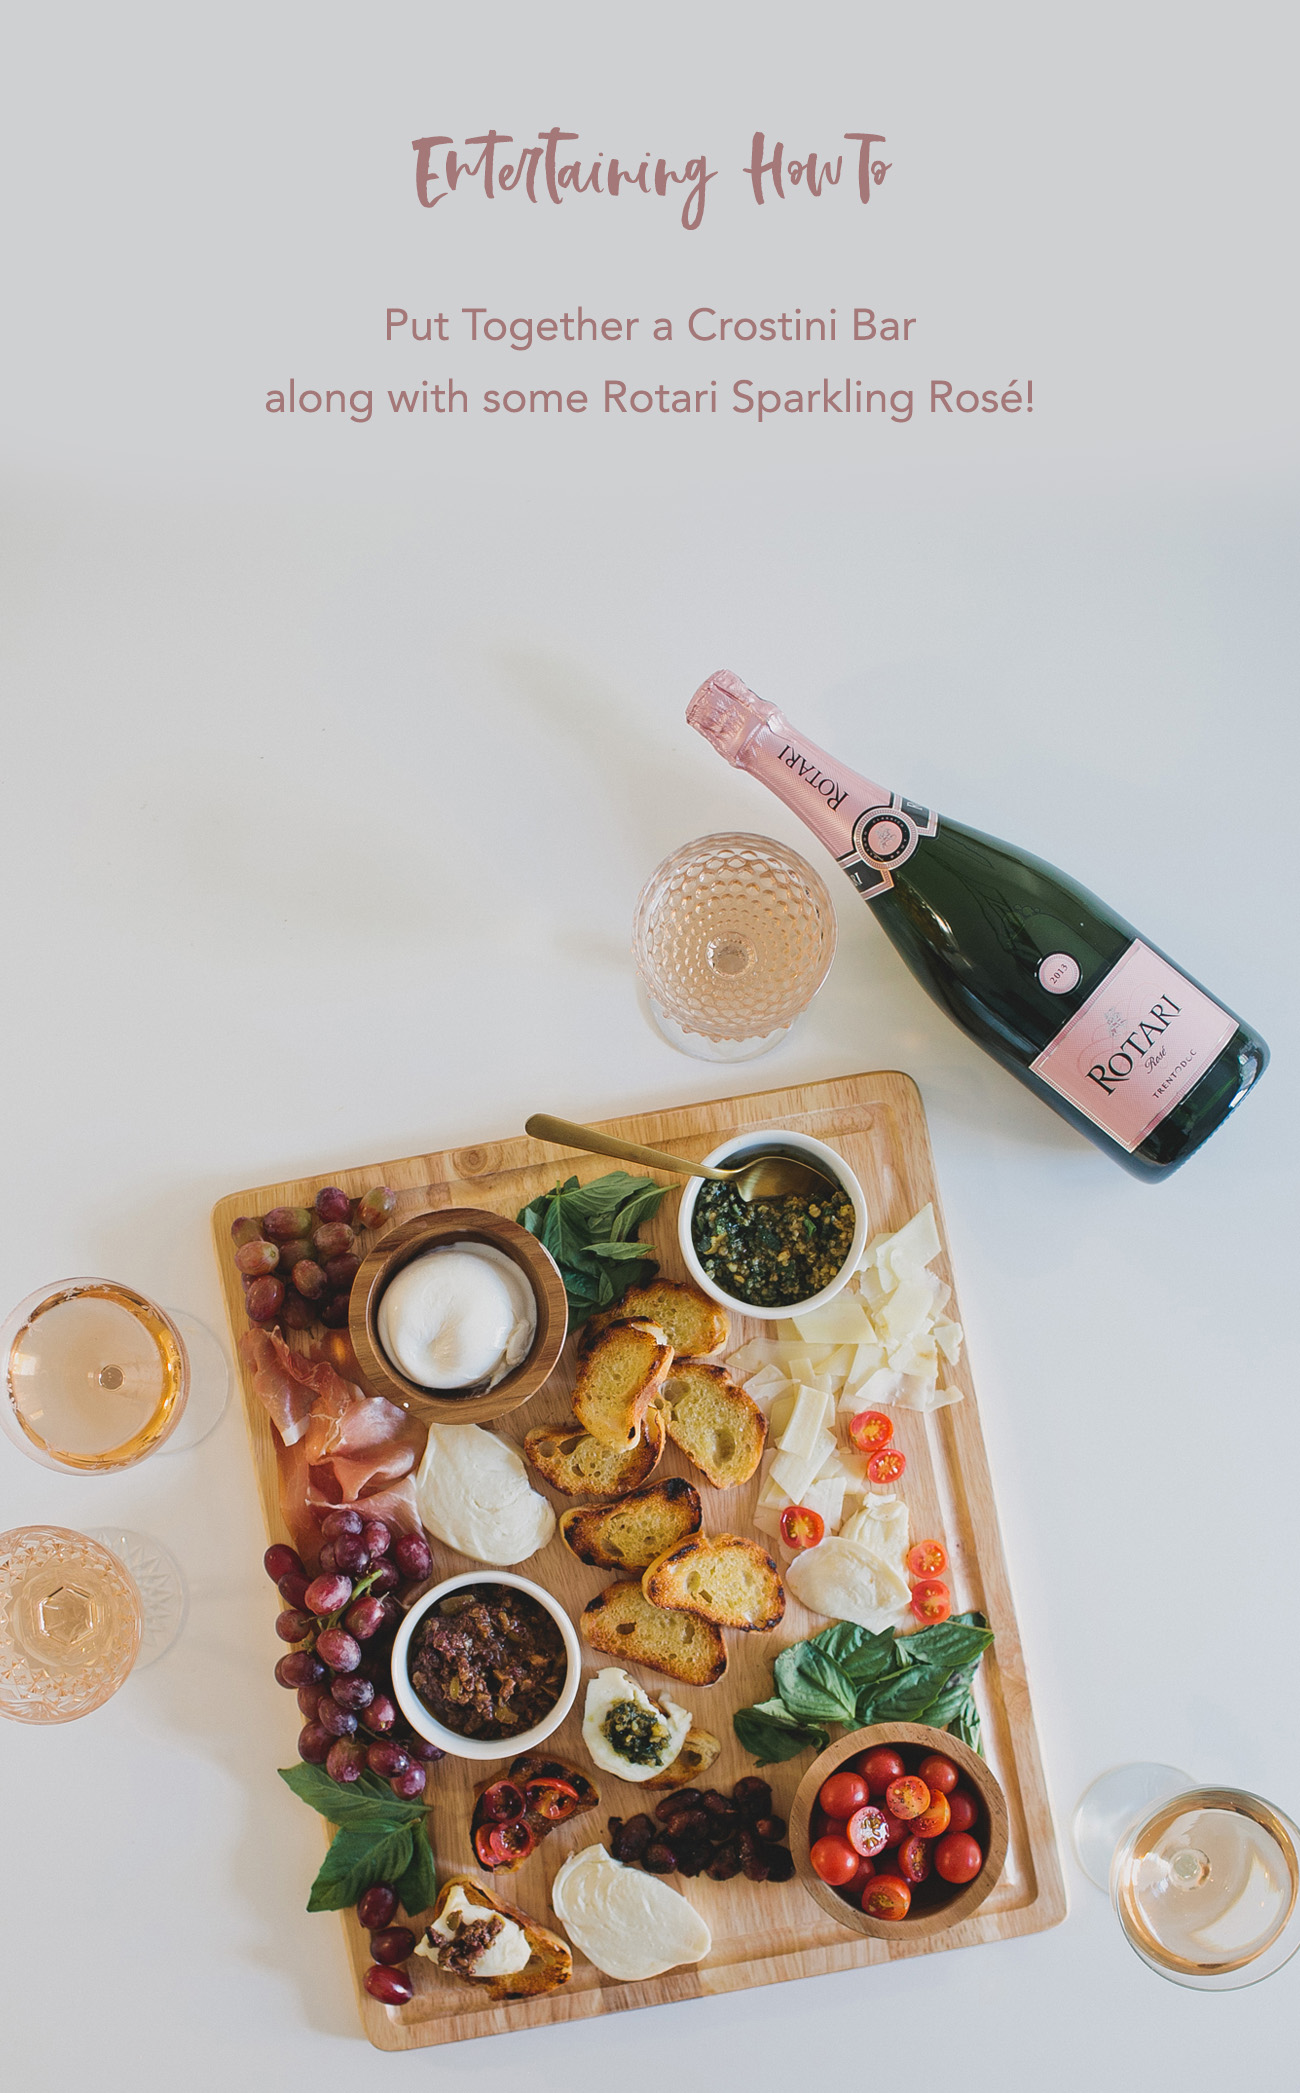 Crostini Bar with Rotari Sparkling Rose